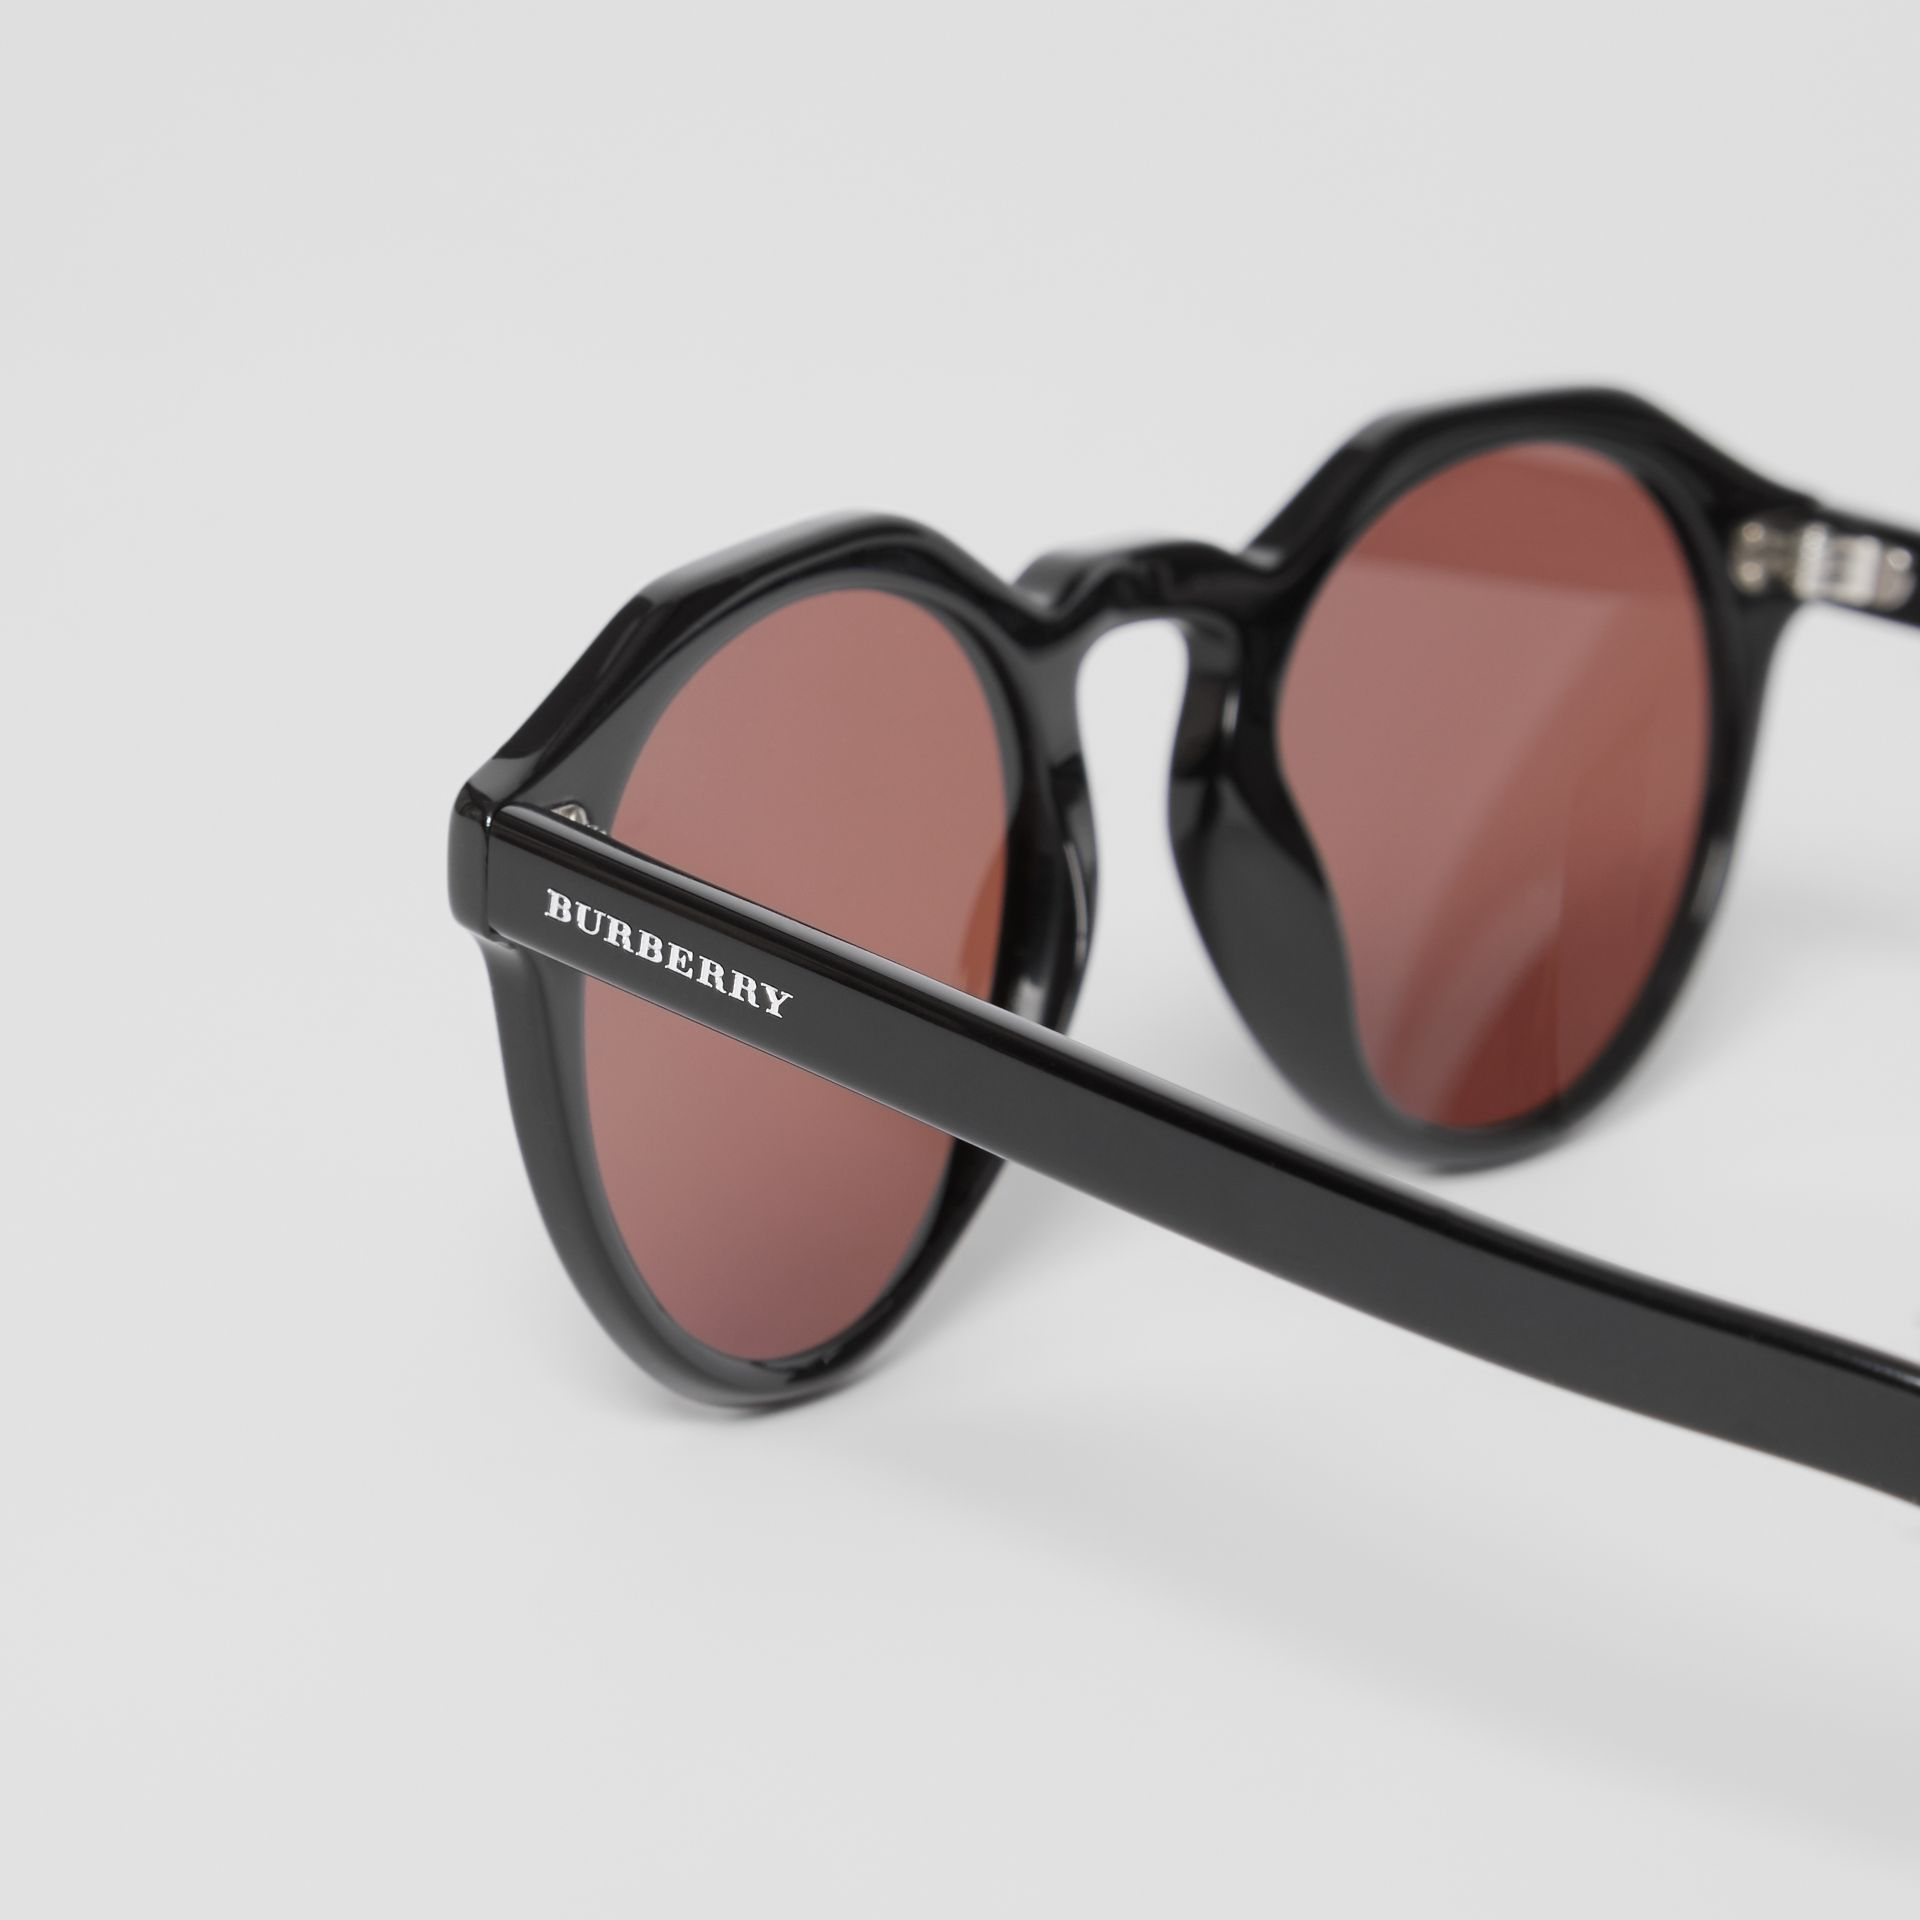 Keyhole Round Frame Sunglasses in Black - Men | Burberry - gallery image 1